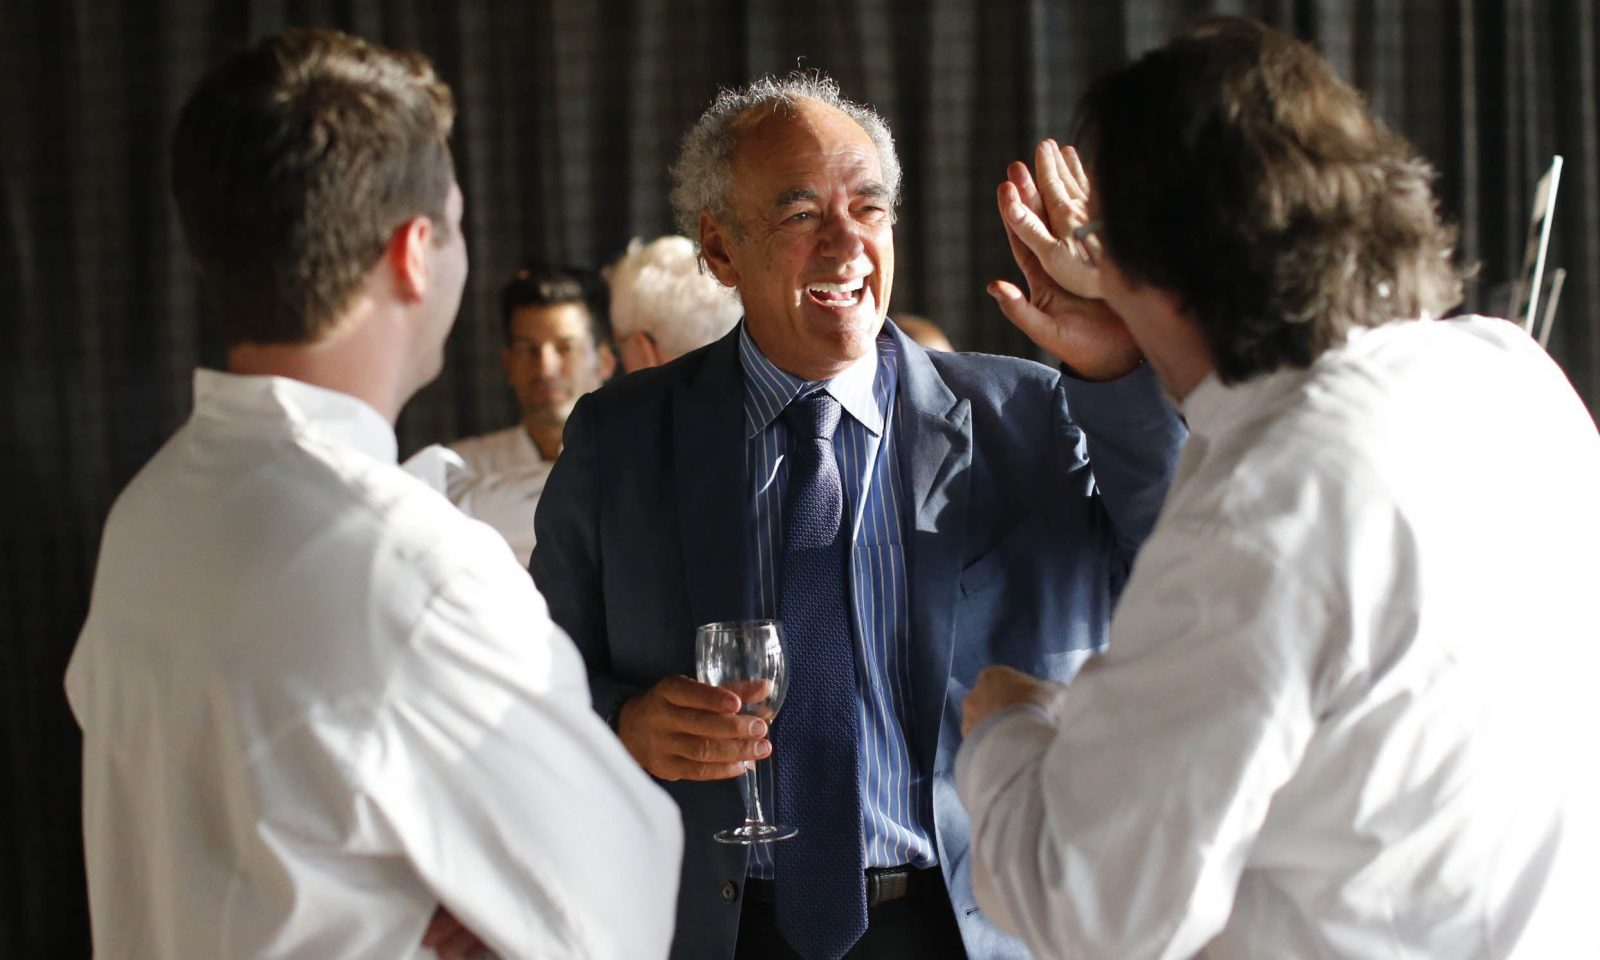 Legendary producer Shep Gordon, center, mingles with celebrity chefs attending a fundraiser he co-hosted to start a scholarship to the Culinary Institute of America in honor of his late friend, legendary chef Roger Verge. (Derek Gee/Buffalo News)